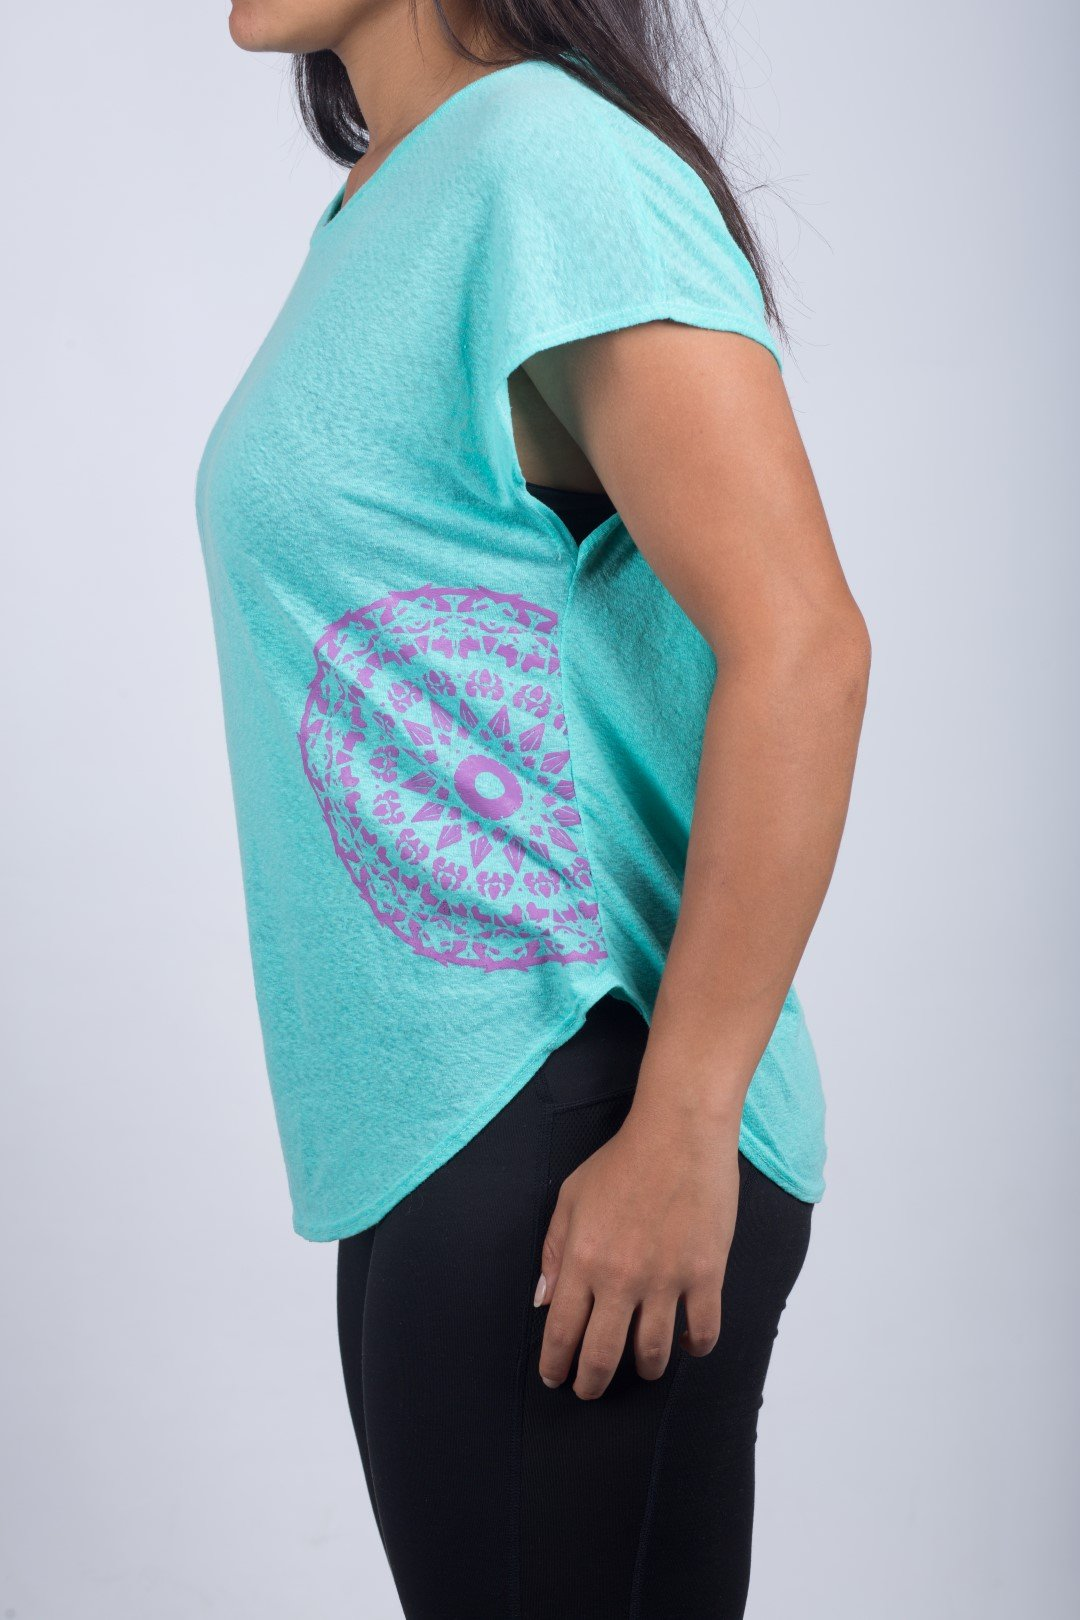 WOMEN'S ROUND NECK T-SHIRT (SKY BLUE) - Sigma Fit US